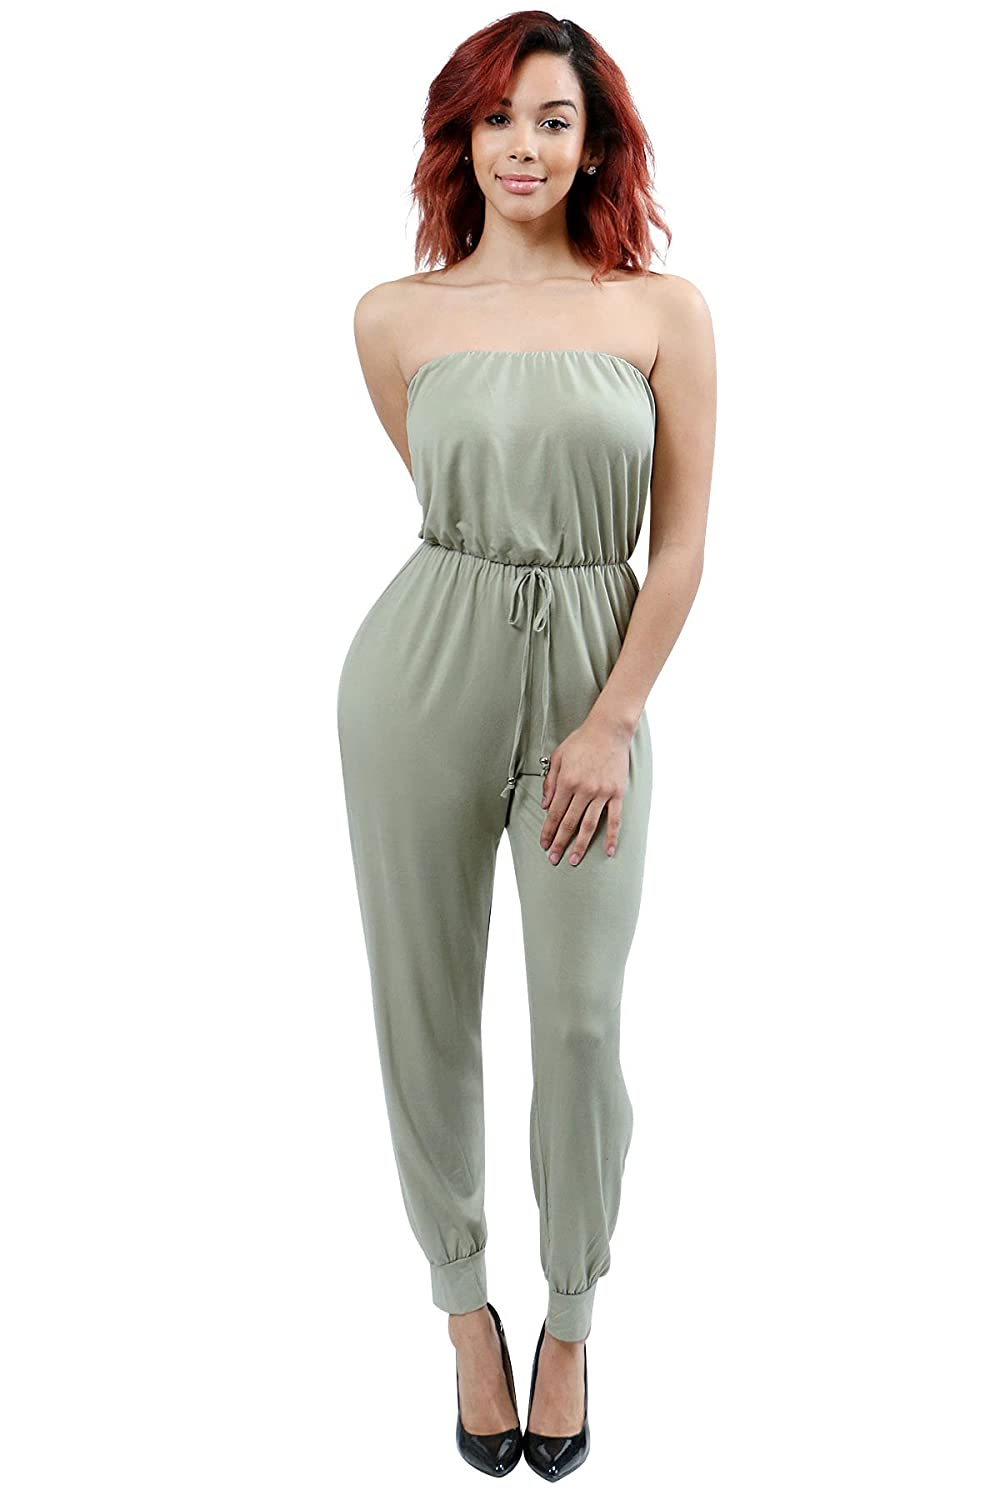 NY Closet Women's Tube Top Jumpsuit In Solid Color Elastic Band